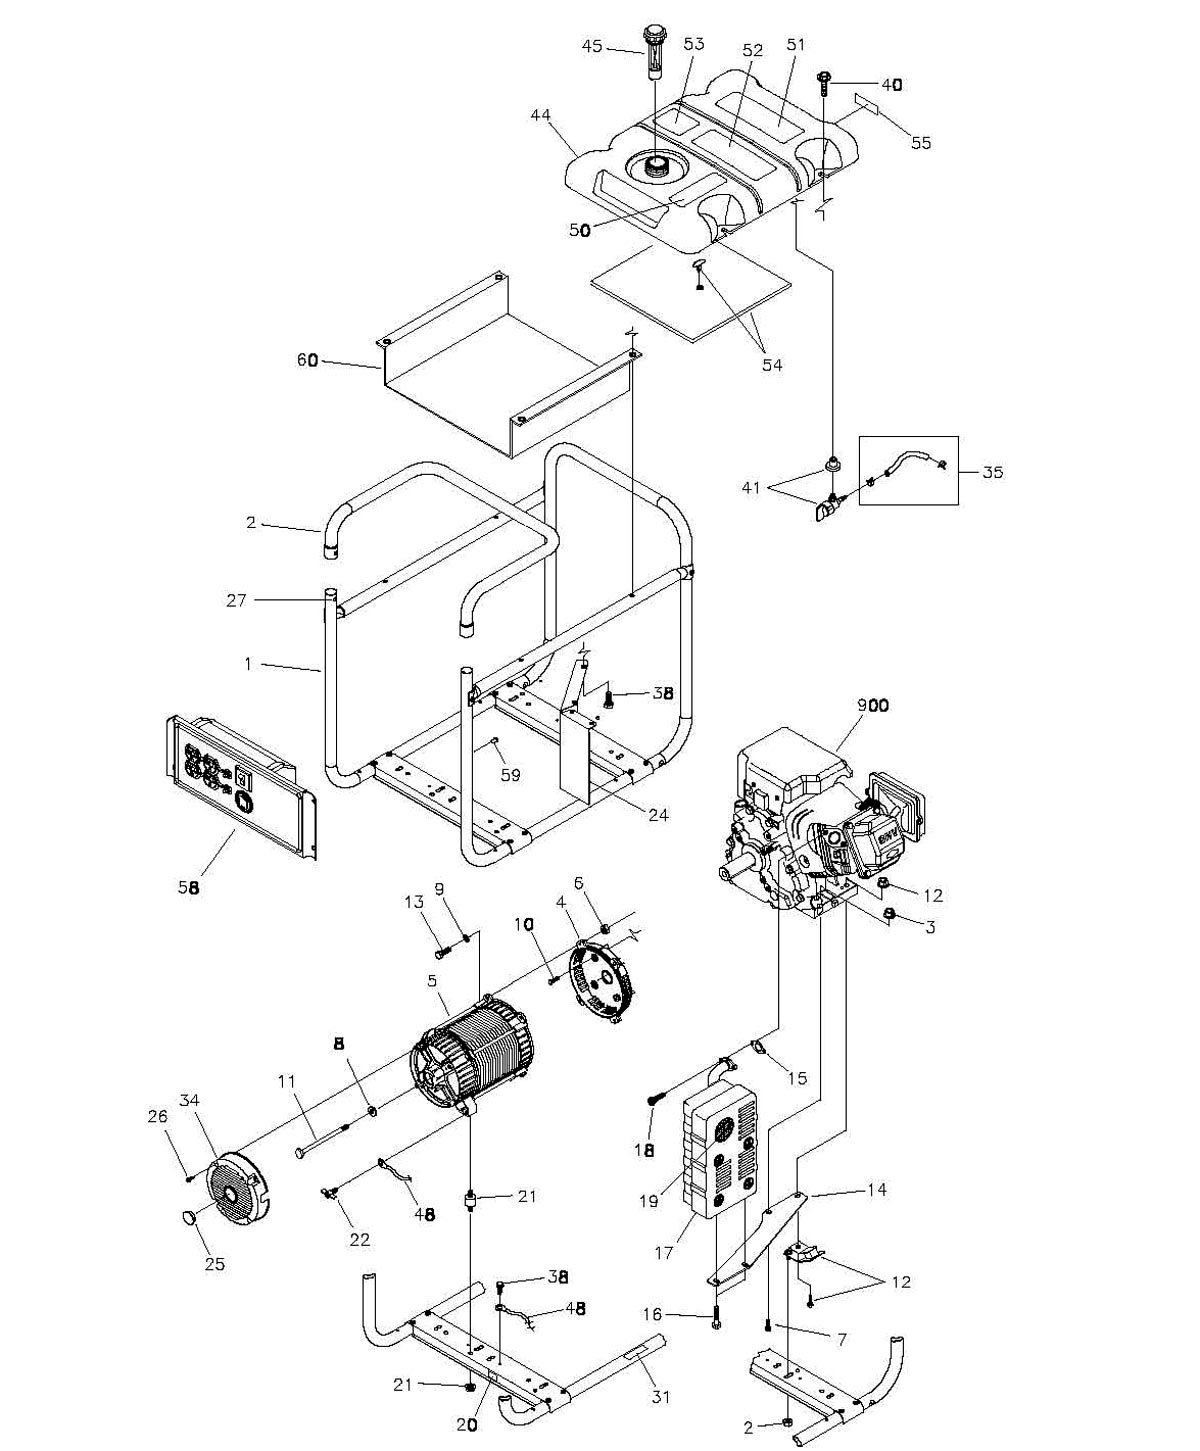 troy bilt pressure washer parts diagram dual battery system wiring boat chipper vac model 47291